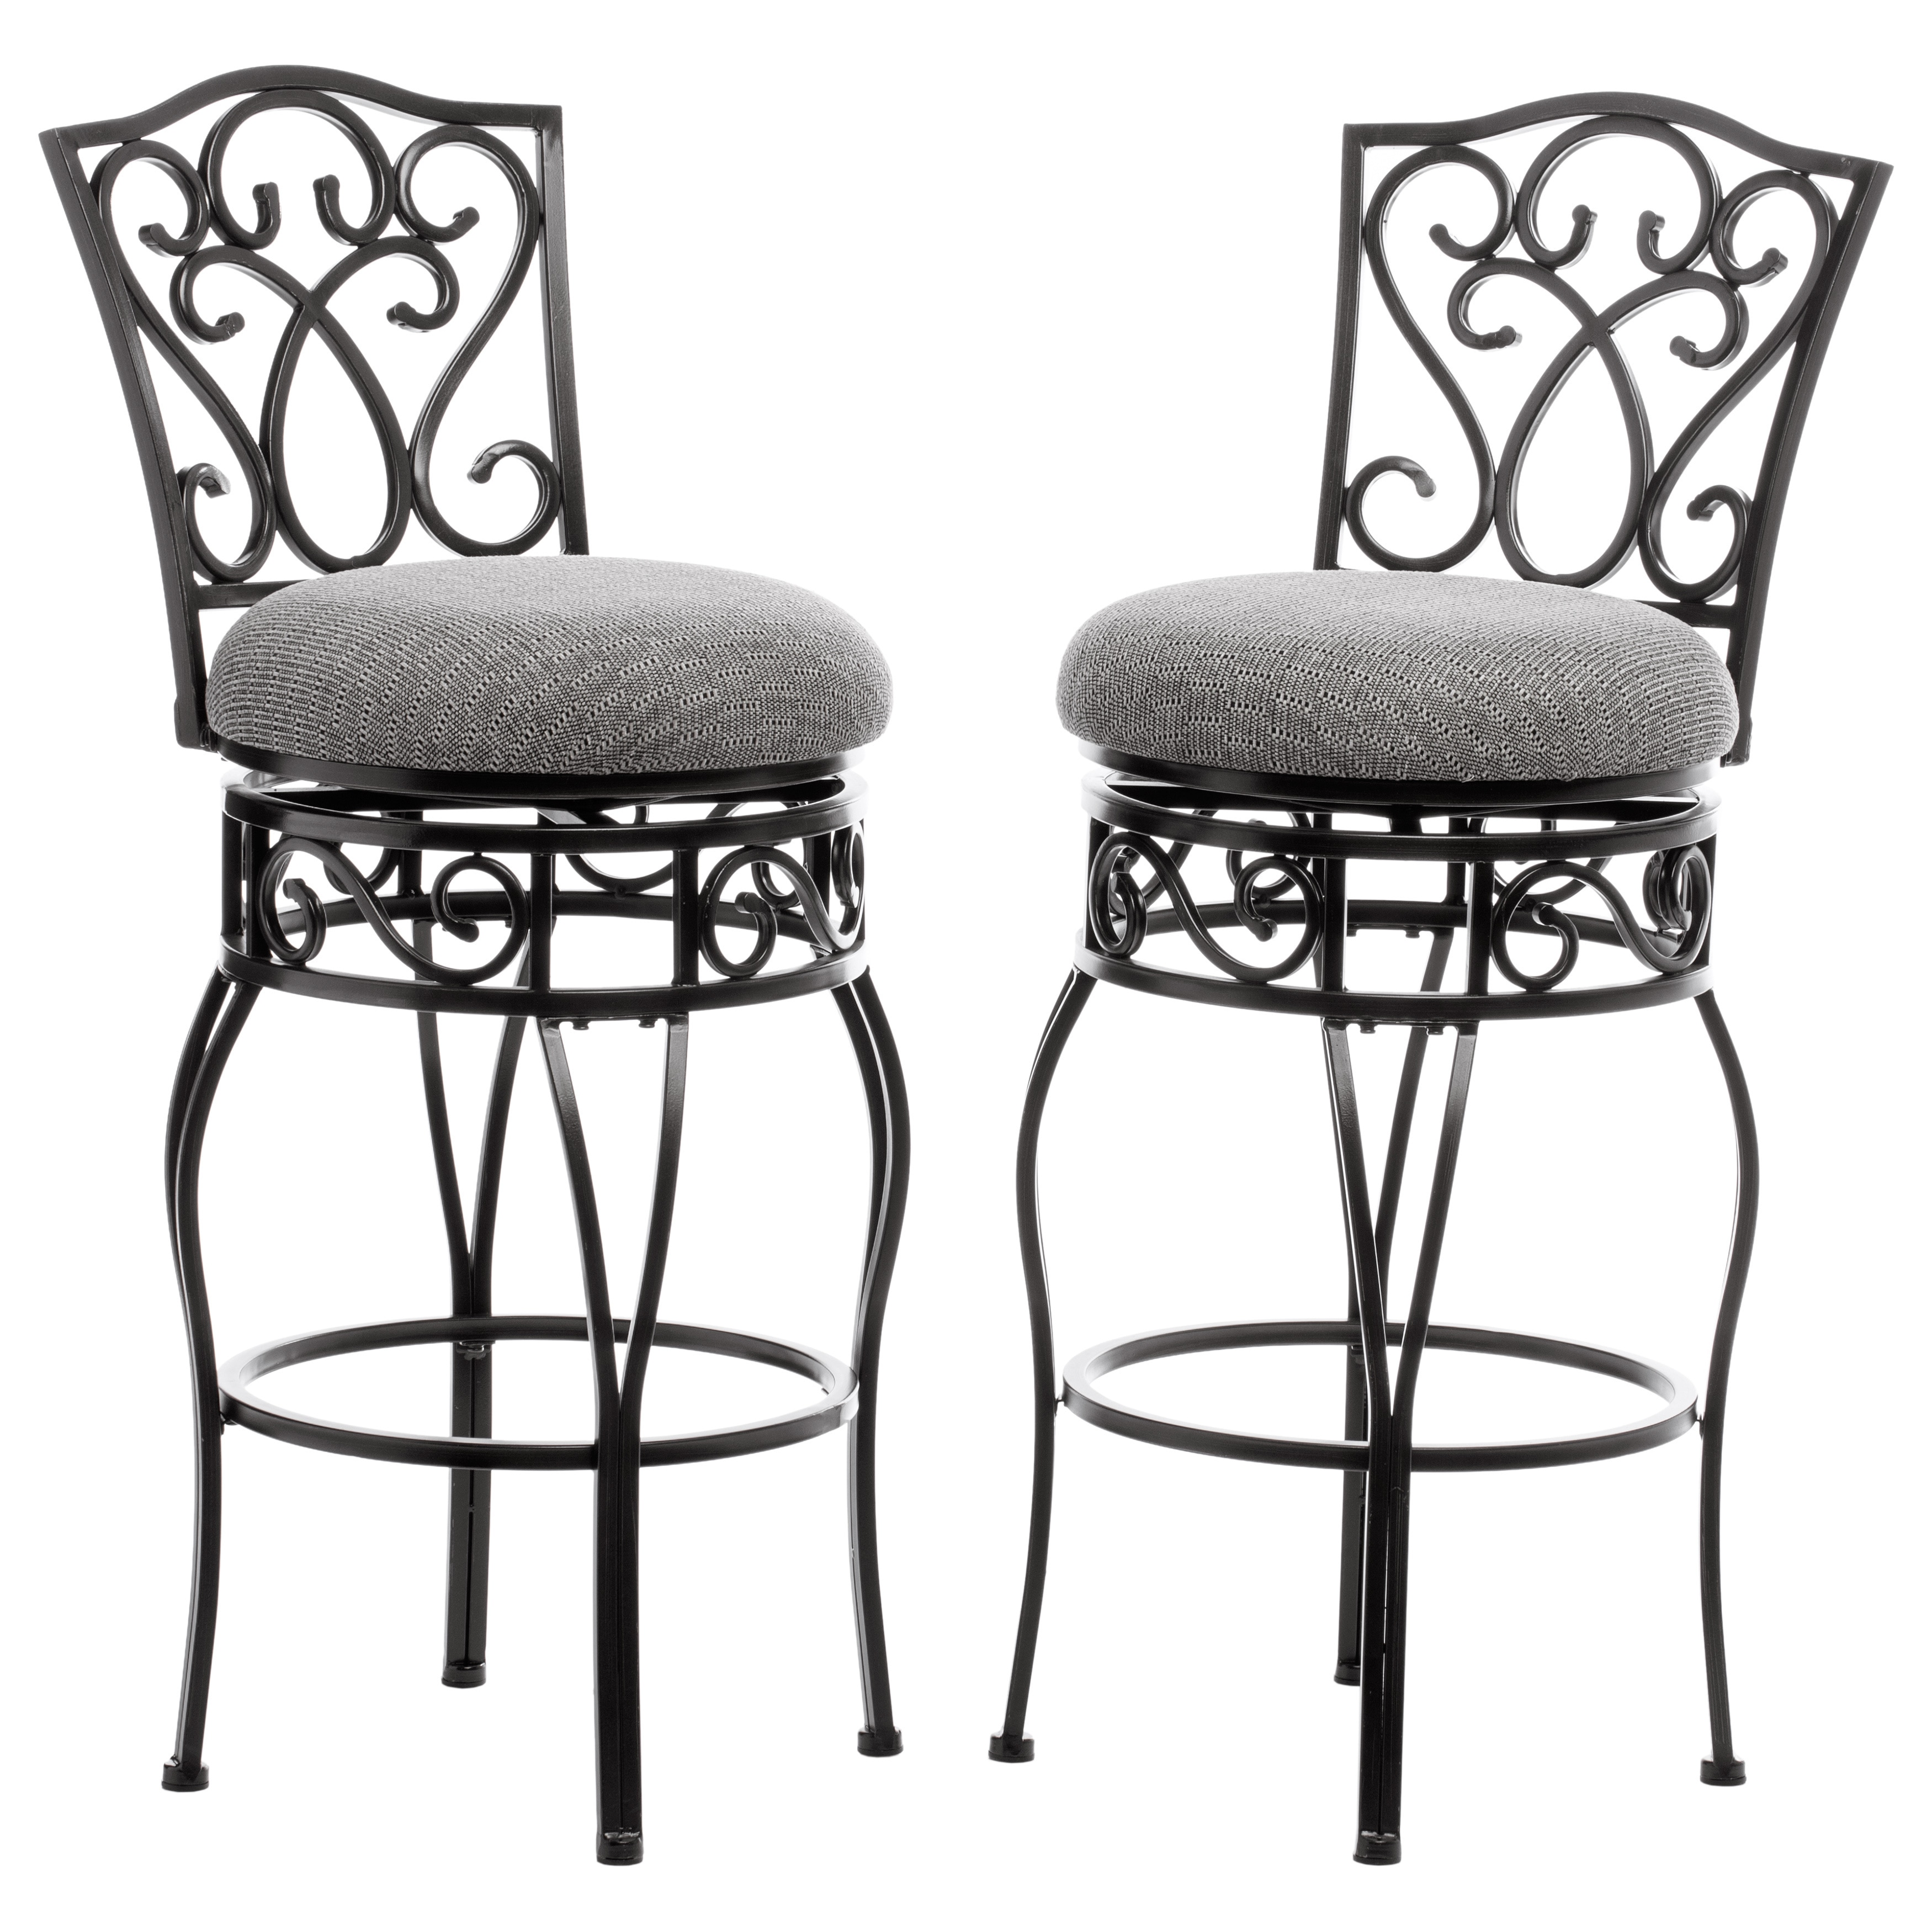 Pleasing Gracewood Hollow Chase 30 Inch Bar Stools Pack Of 2 Ibusinesslaw Wood Chair Design Ideas Ibusinesslaworg